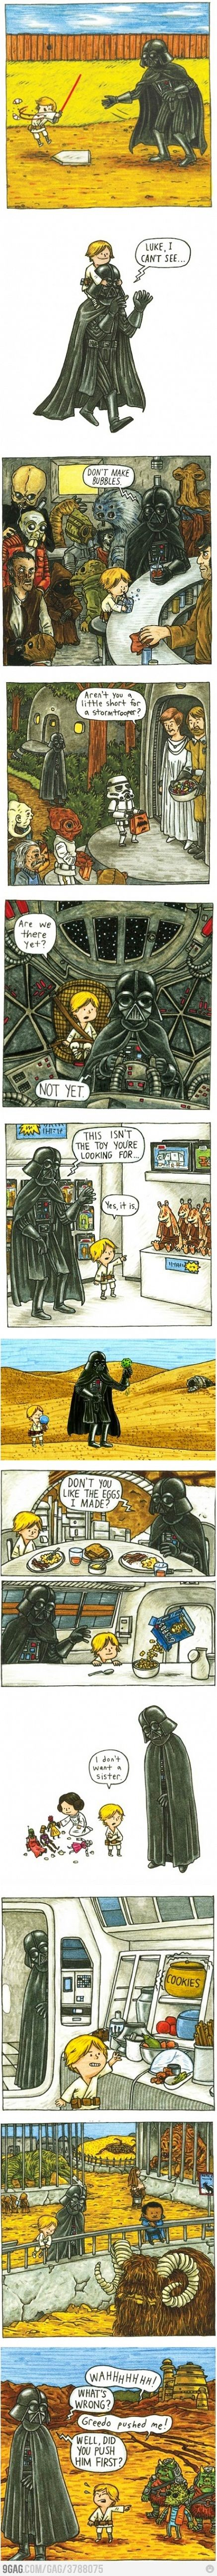 Darth Vader and Luke this warms your heart..